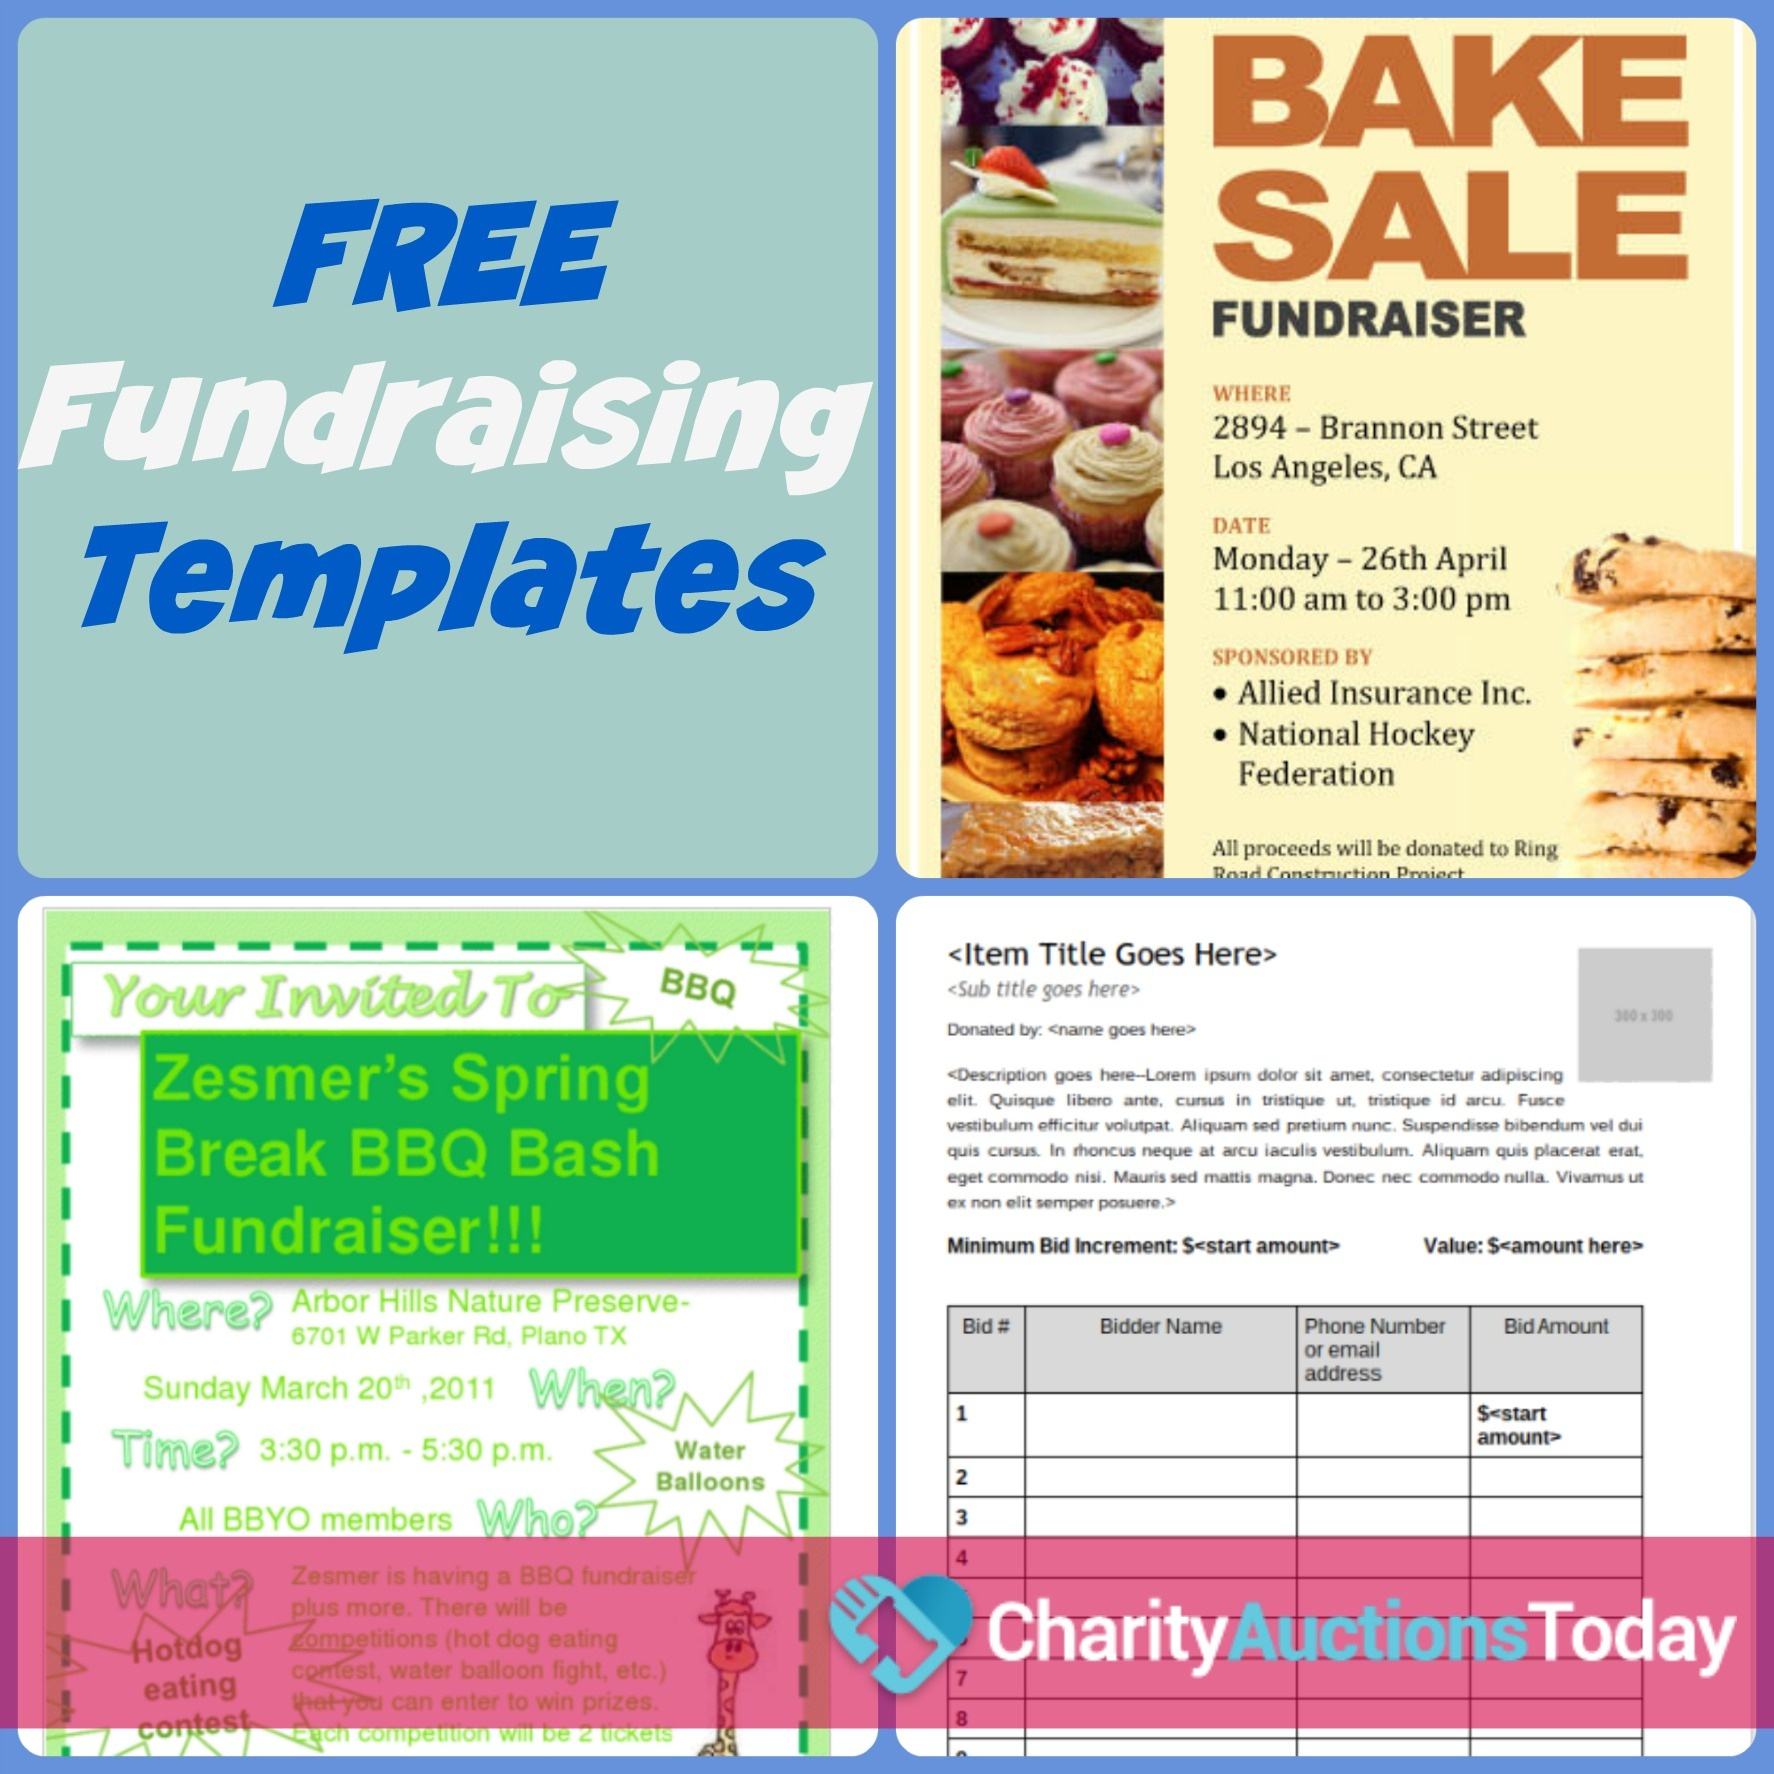 Free Fundraiser Flyer   Charity Auctions Today - Free Printable Fundraiser Flyer Templates